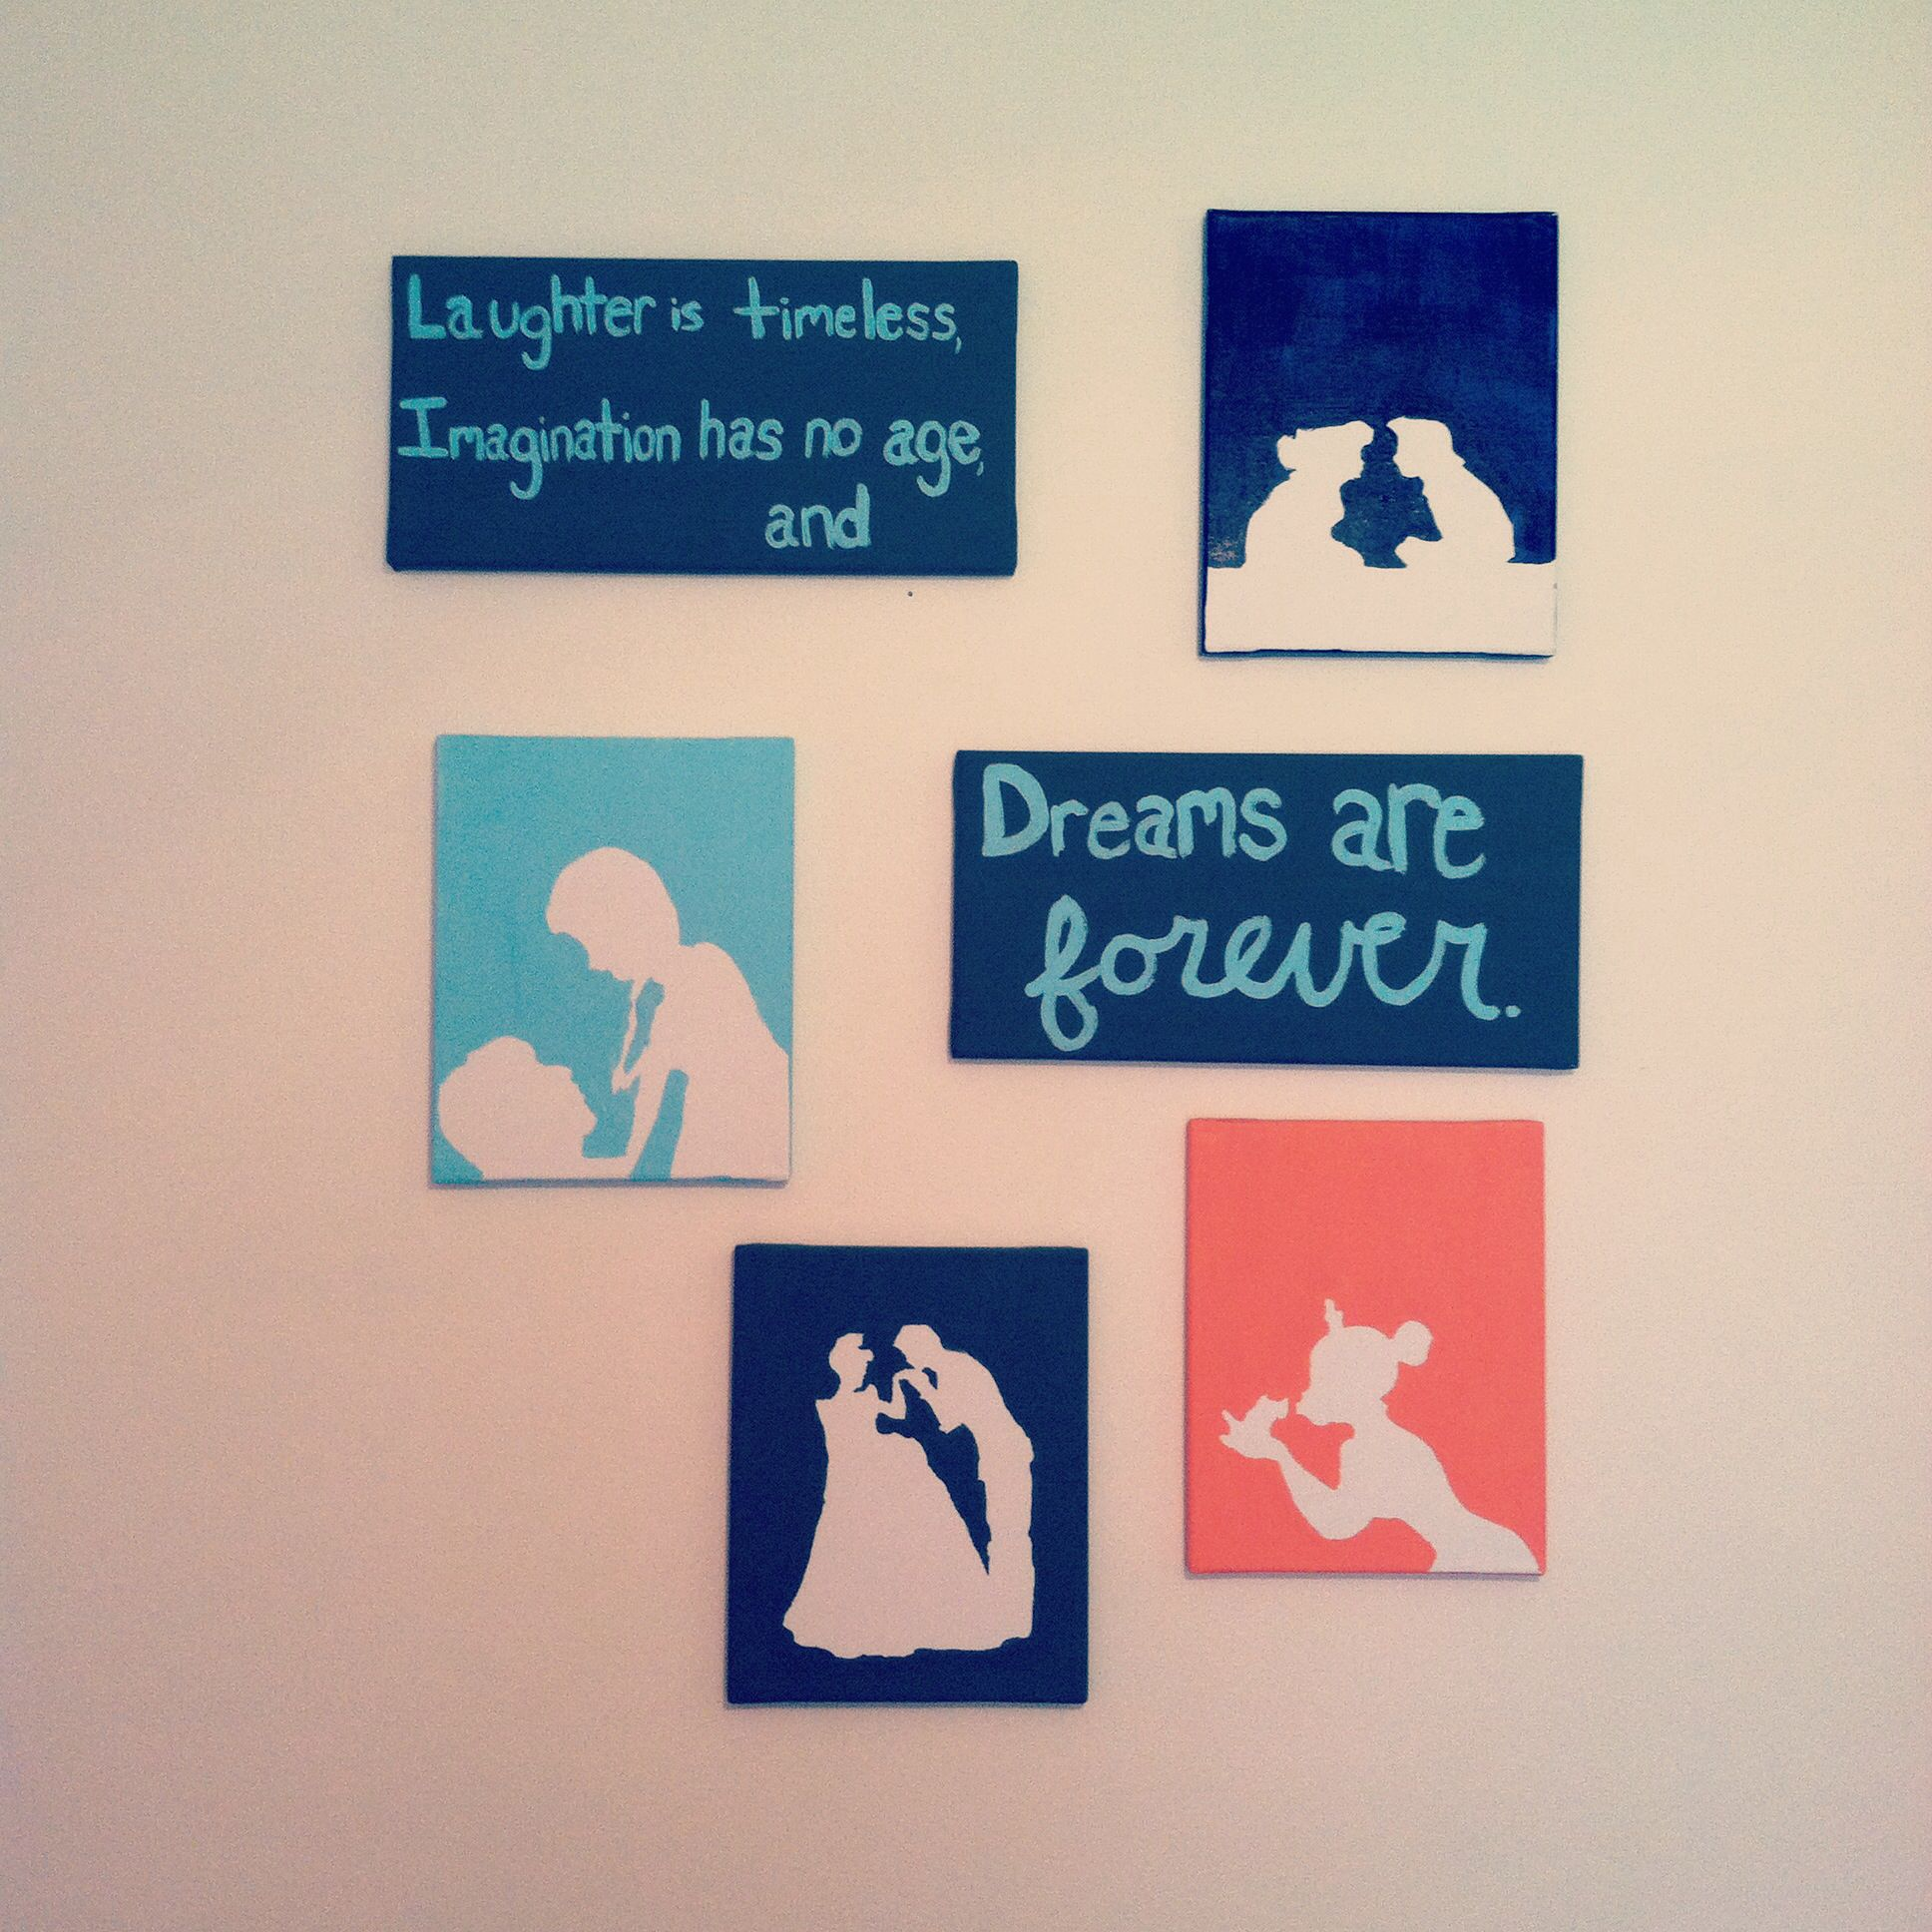 Easy Disney Princess Canvas Paintings Cut Out Silhouettes Of Characters Placed Them On A Board And Painted Over